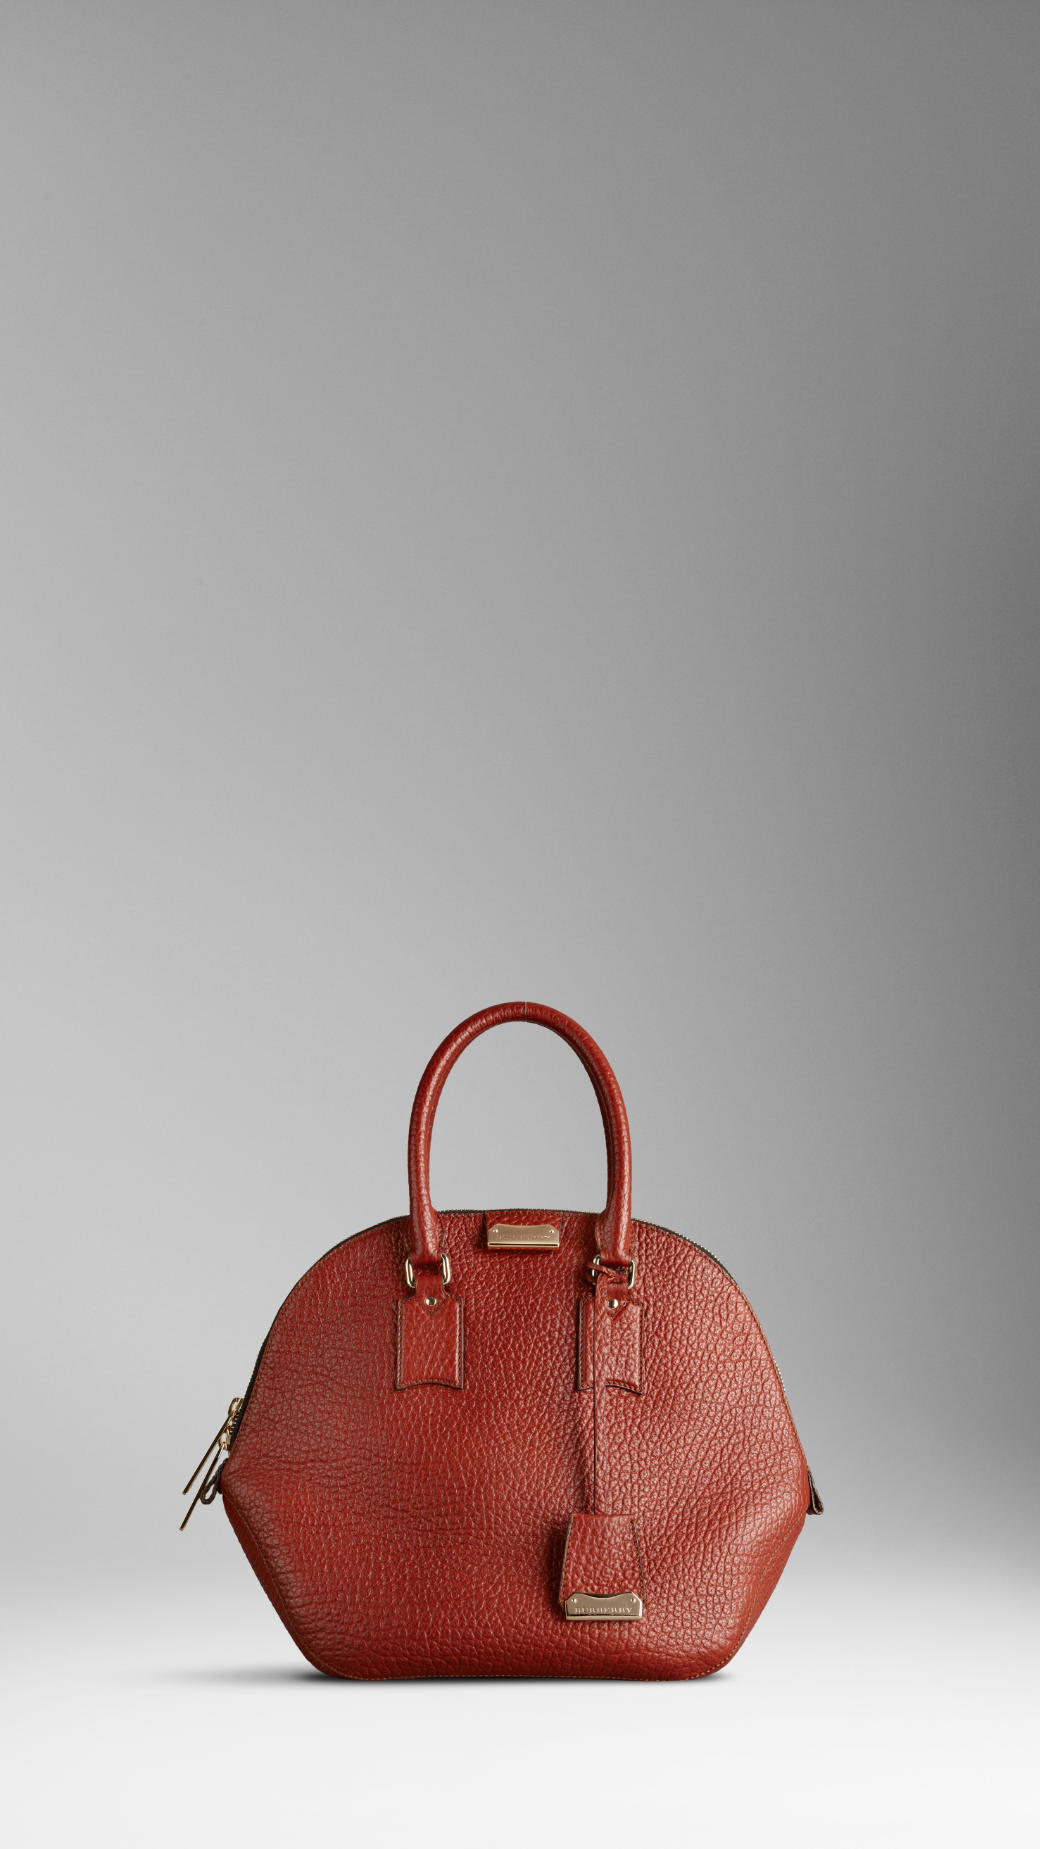 ffc86767dccf Lyst - Burberry The Orchard in Heritage Grain Leather in Brown